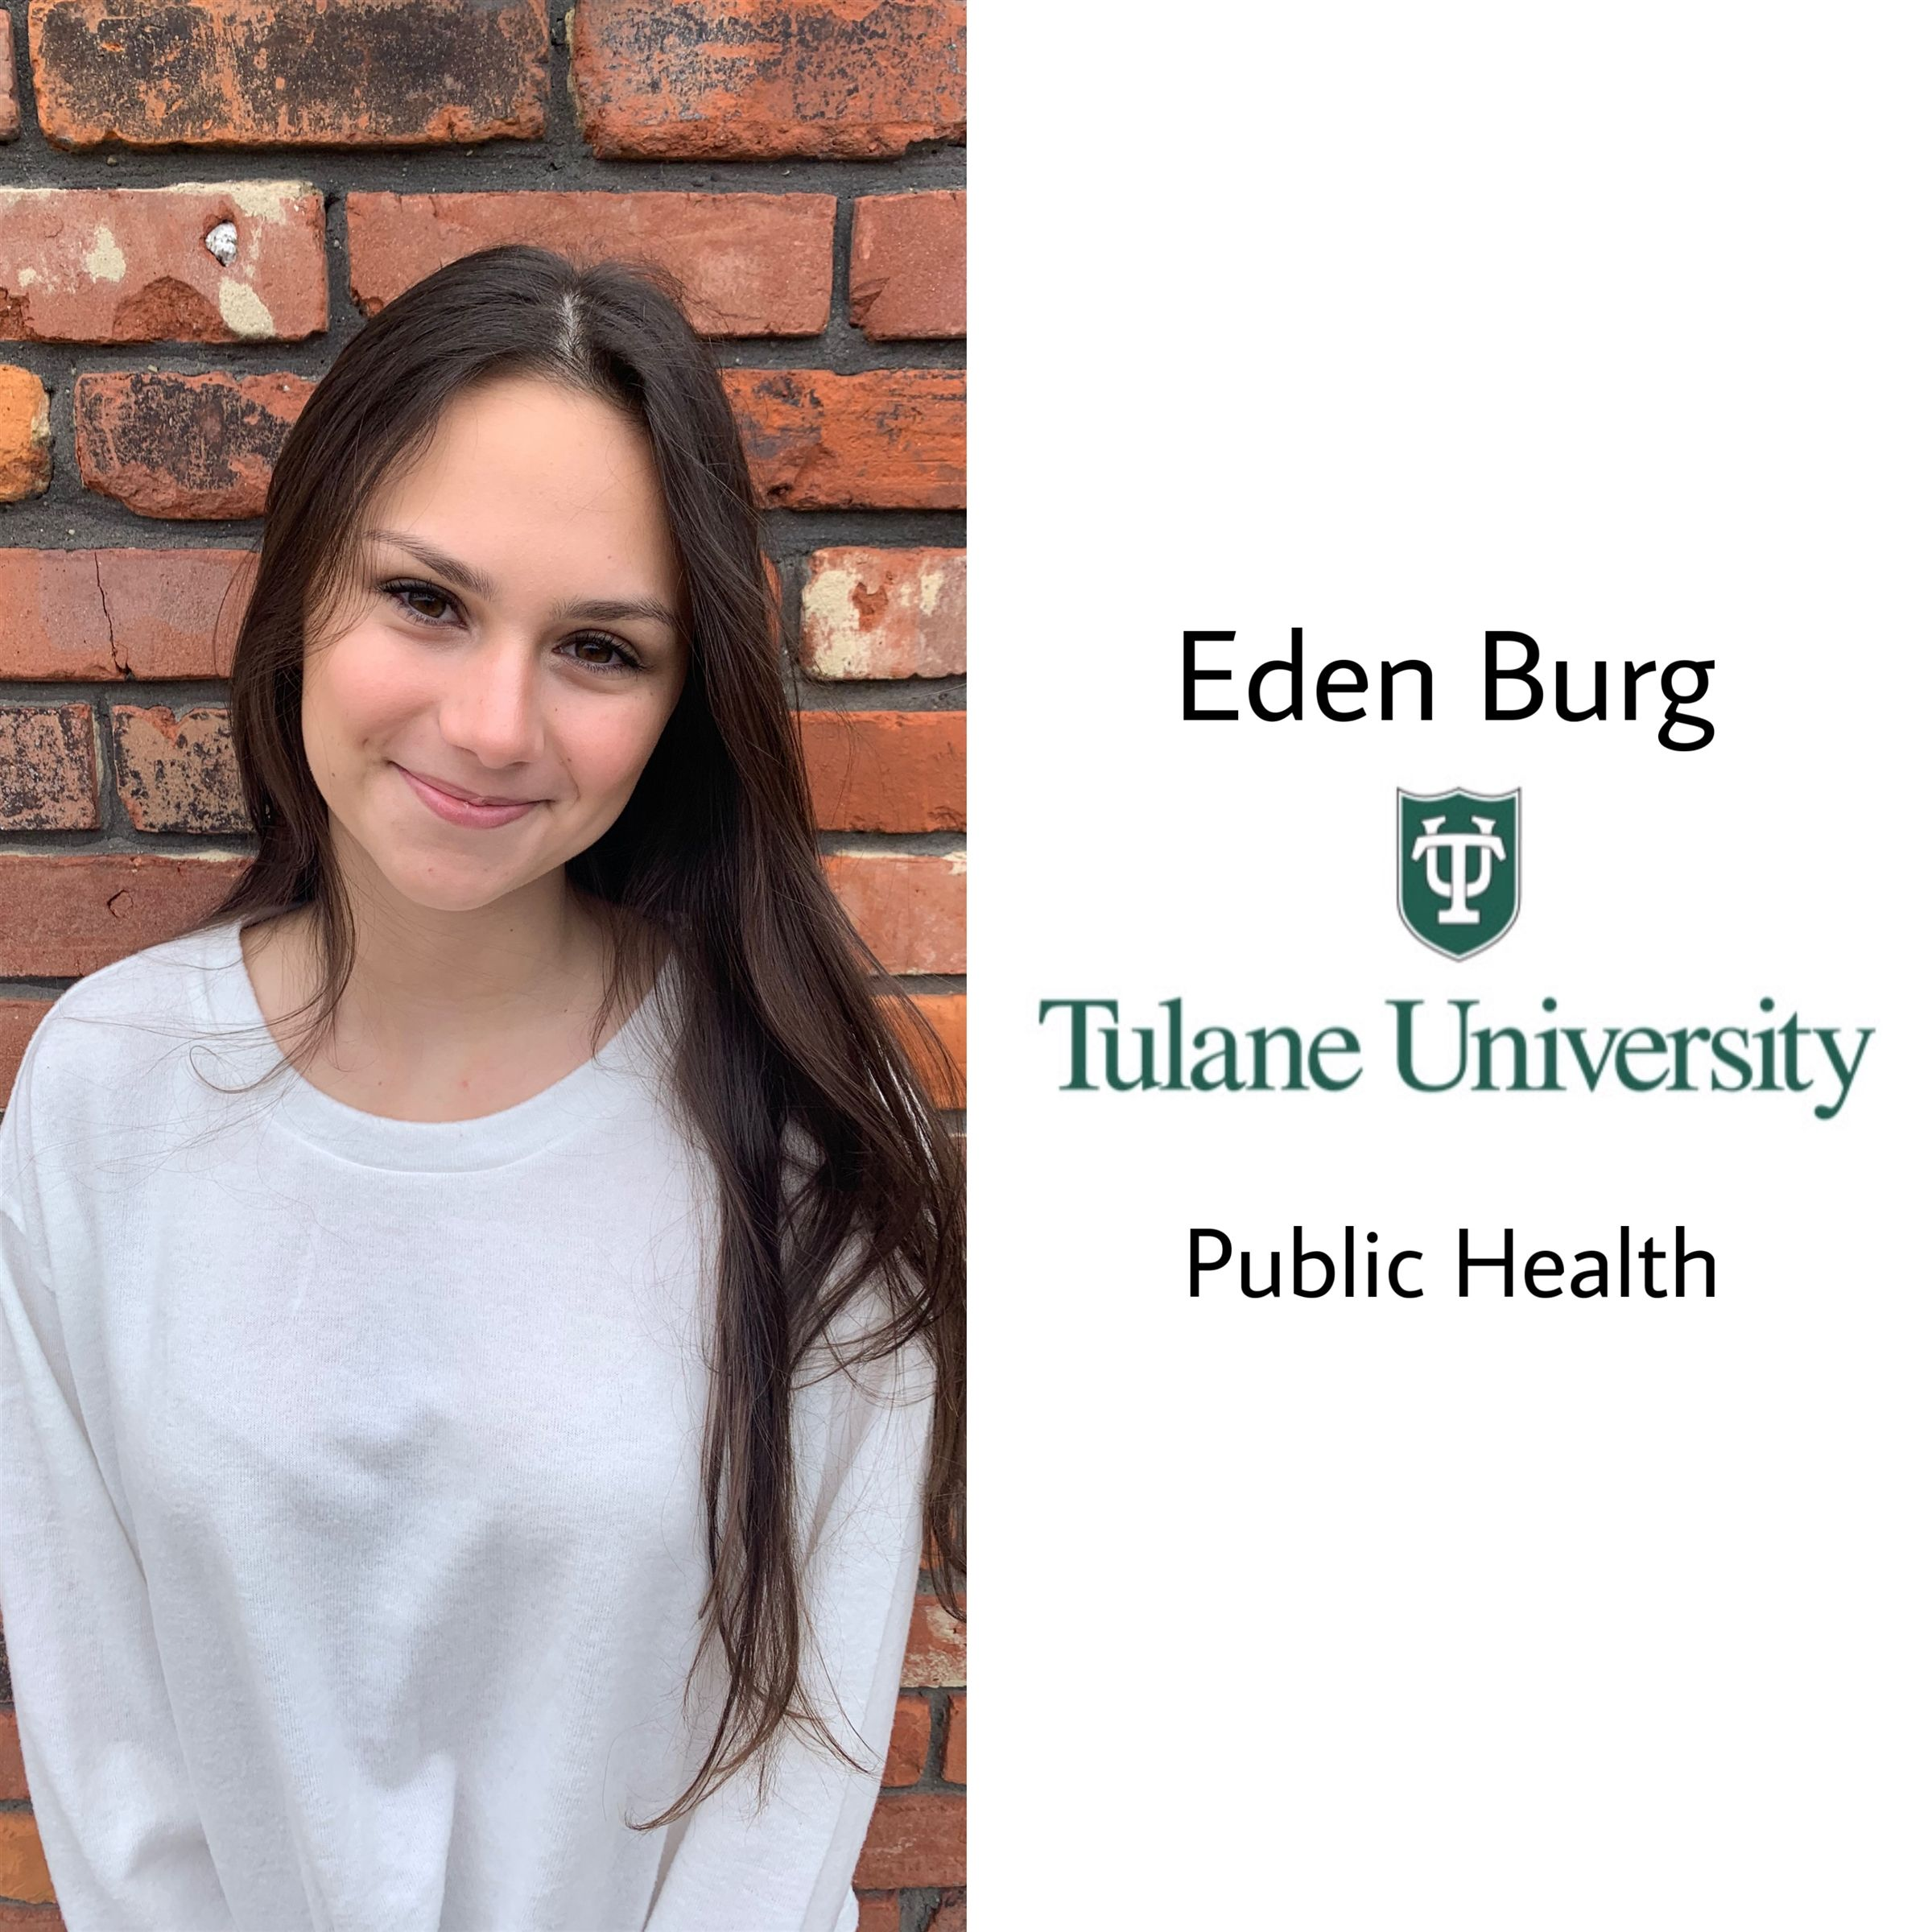 Congrats Eden!!! She will be attending Tulane University next year majoring in public health on a pre-med track! So proud of you :) Roll wave